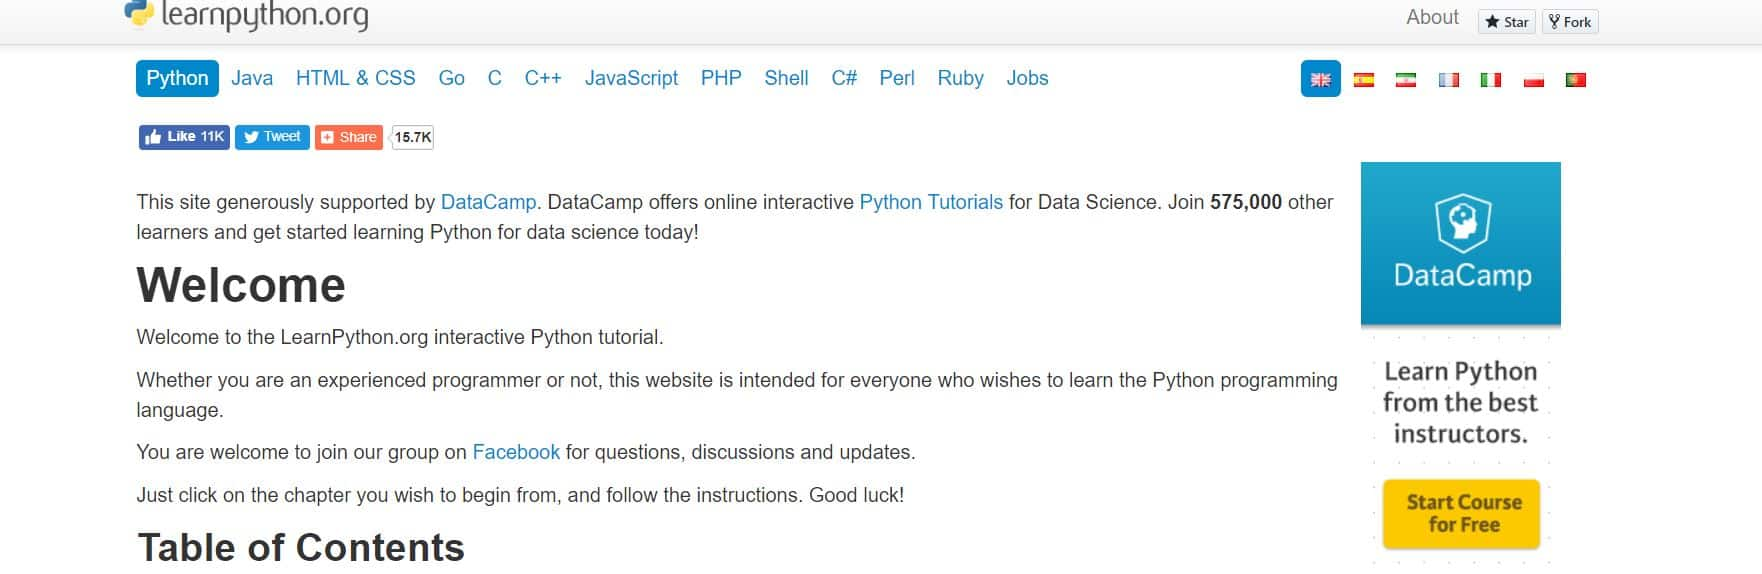 Learn Python with Learnpython.org